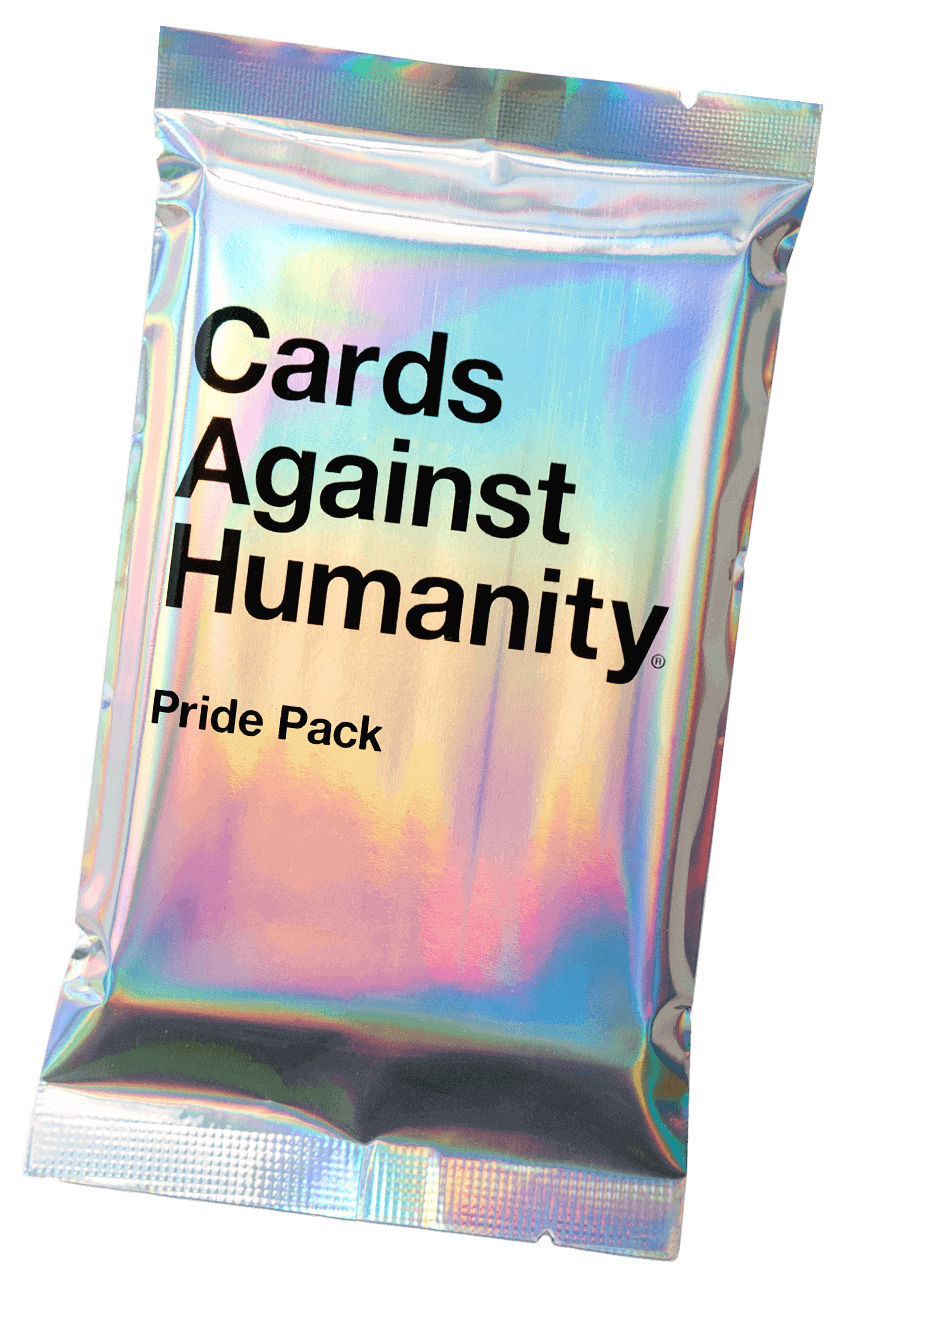 Cards Against Humanity Pride Pack | Games A Plunder